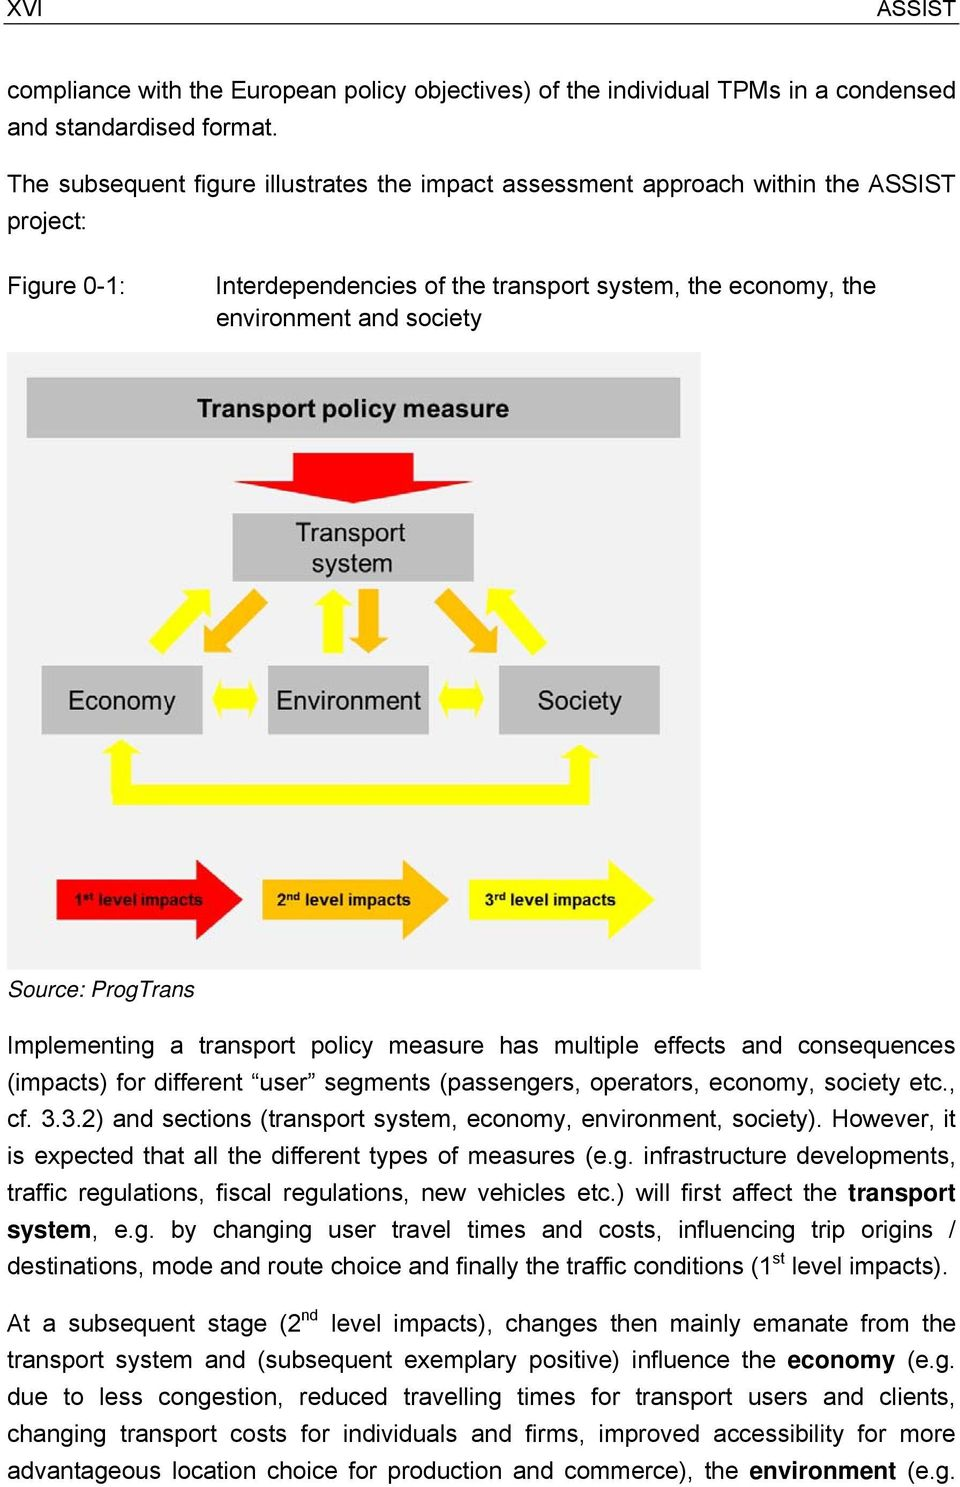 policy measure has multiple effects and consequences () for different user segments (passengers, operators, economy, society etc., cf. 3.3.2) and sections ( system, economy, environment, society).